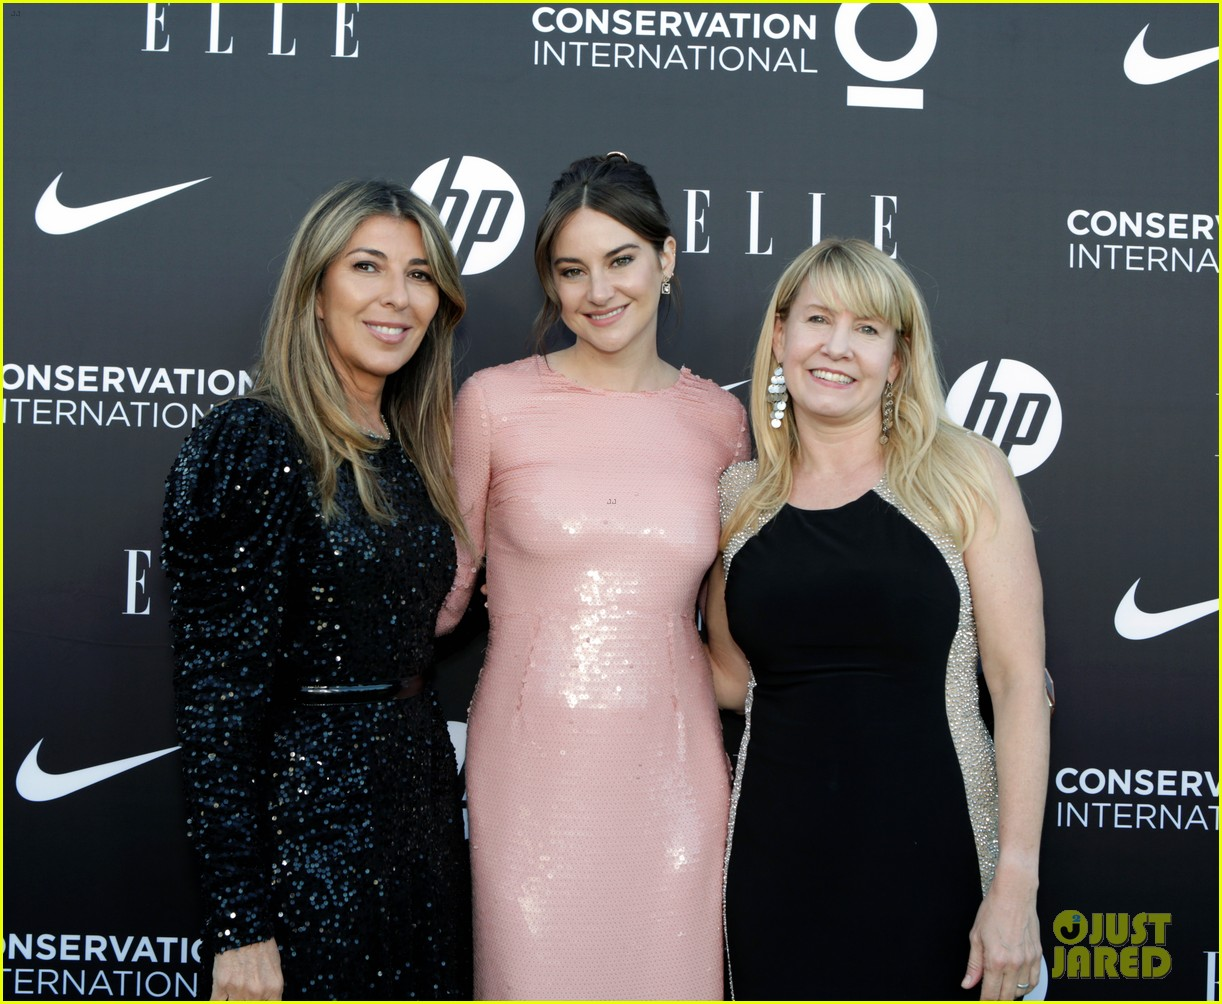 shailene woodley nikki reed lana condor women on mission at elle gala 29